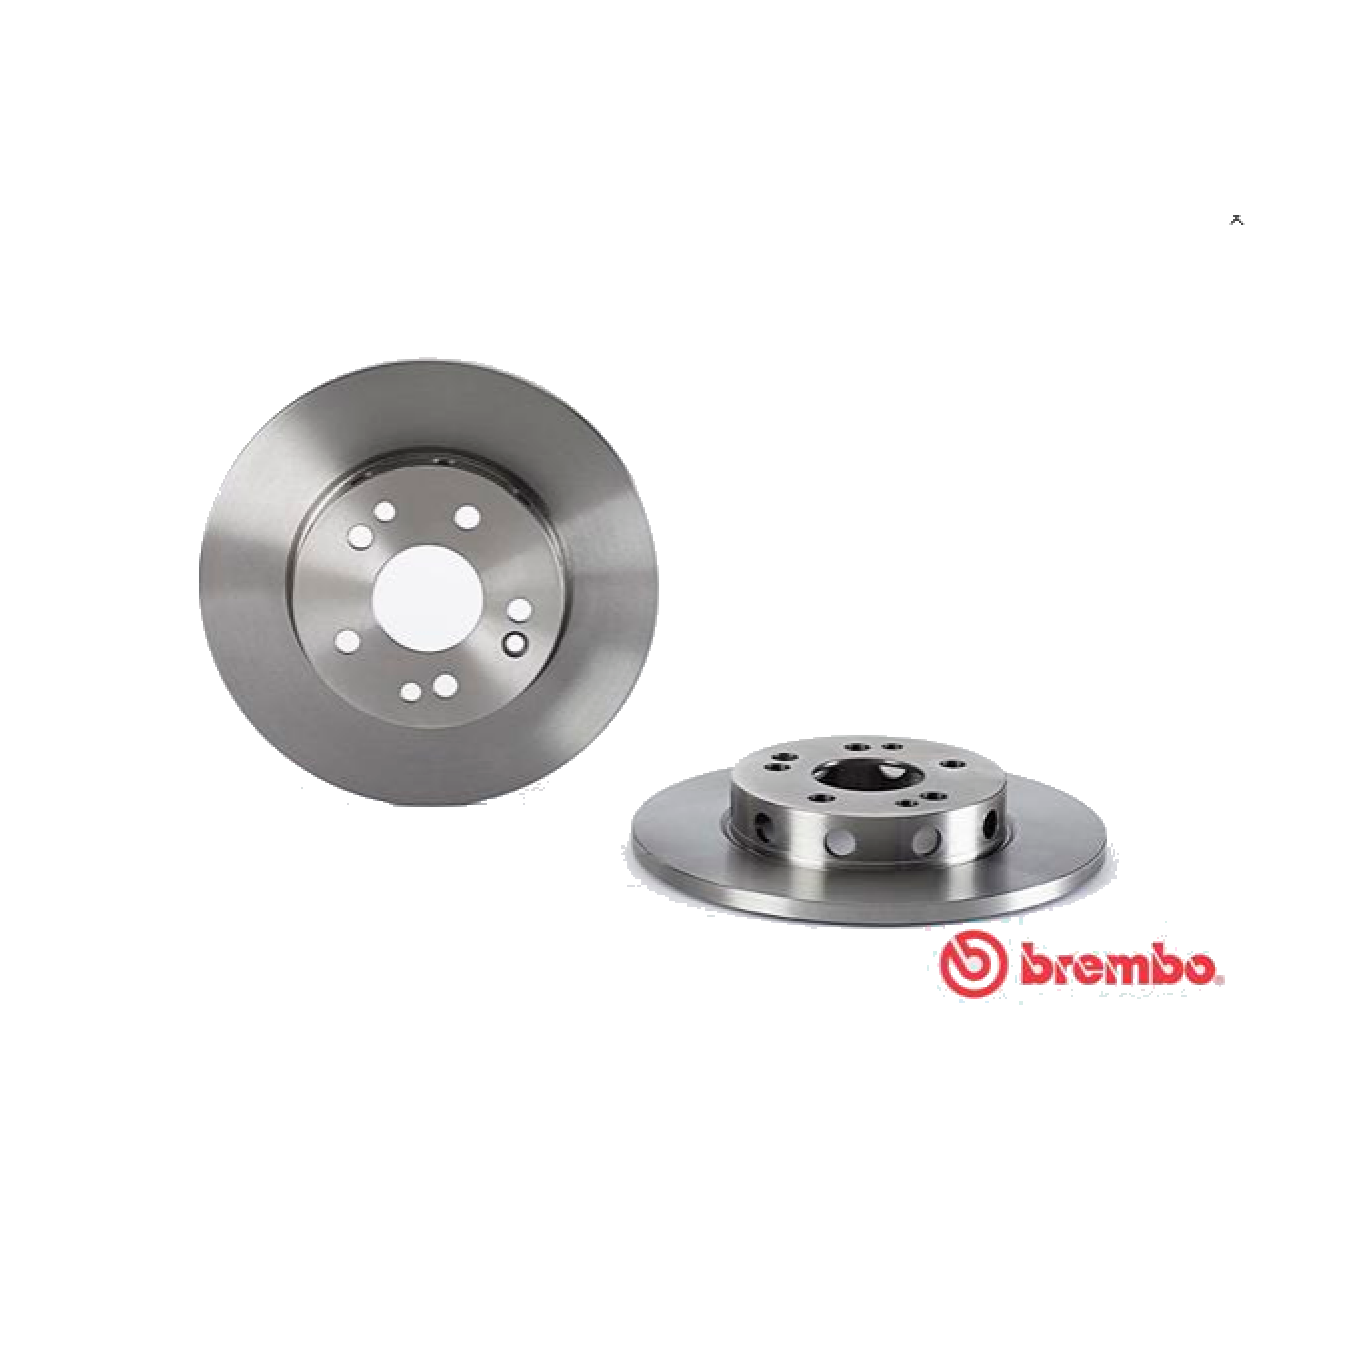 PAIR FRONT BRAKE DISCS MERCEDES E CLASS W124 BREMBO FOR A1244211212